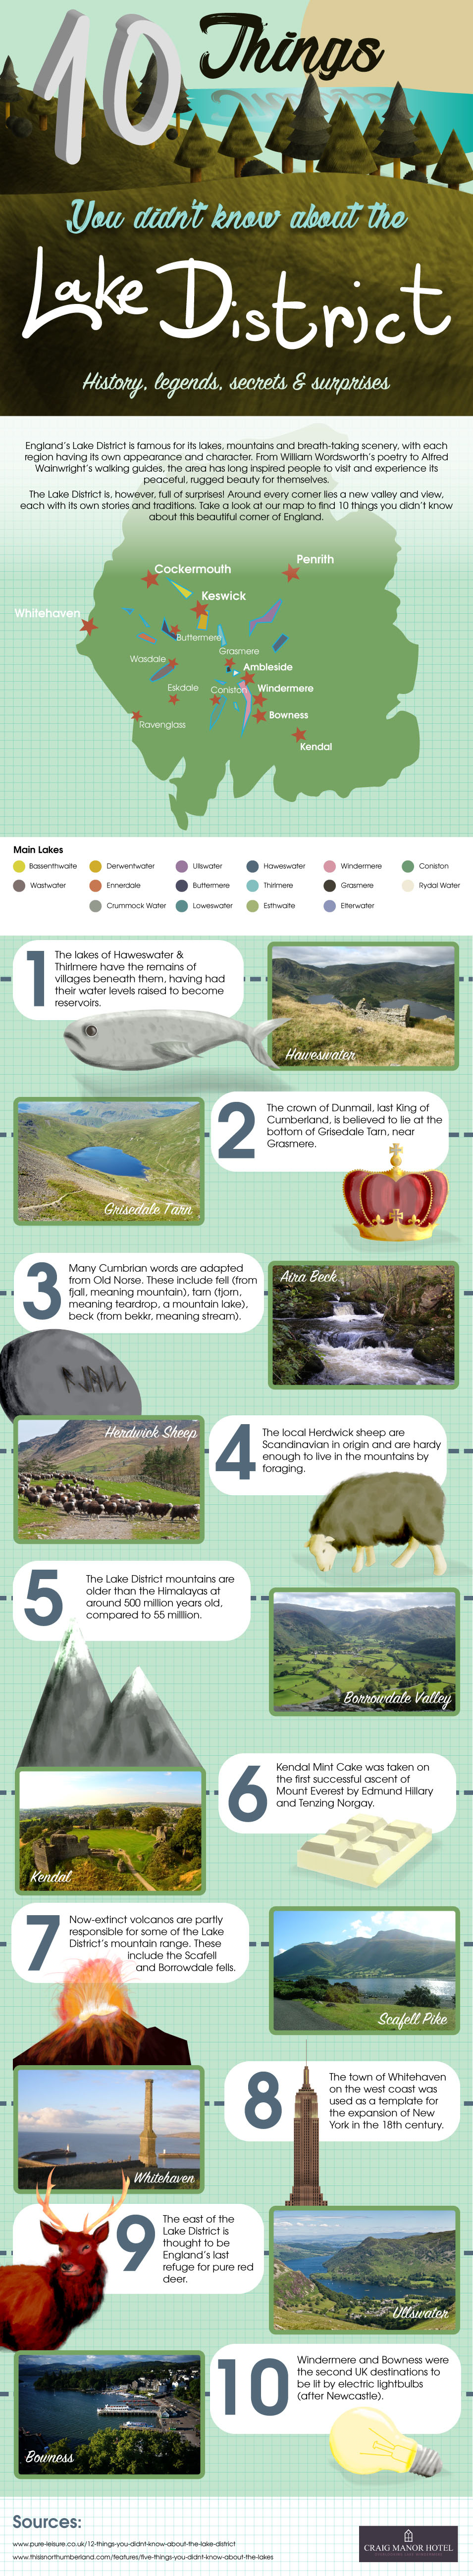 10 Things You Didn't Know About England's Lake District